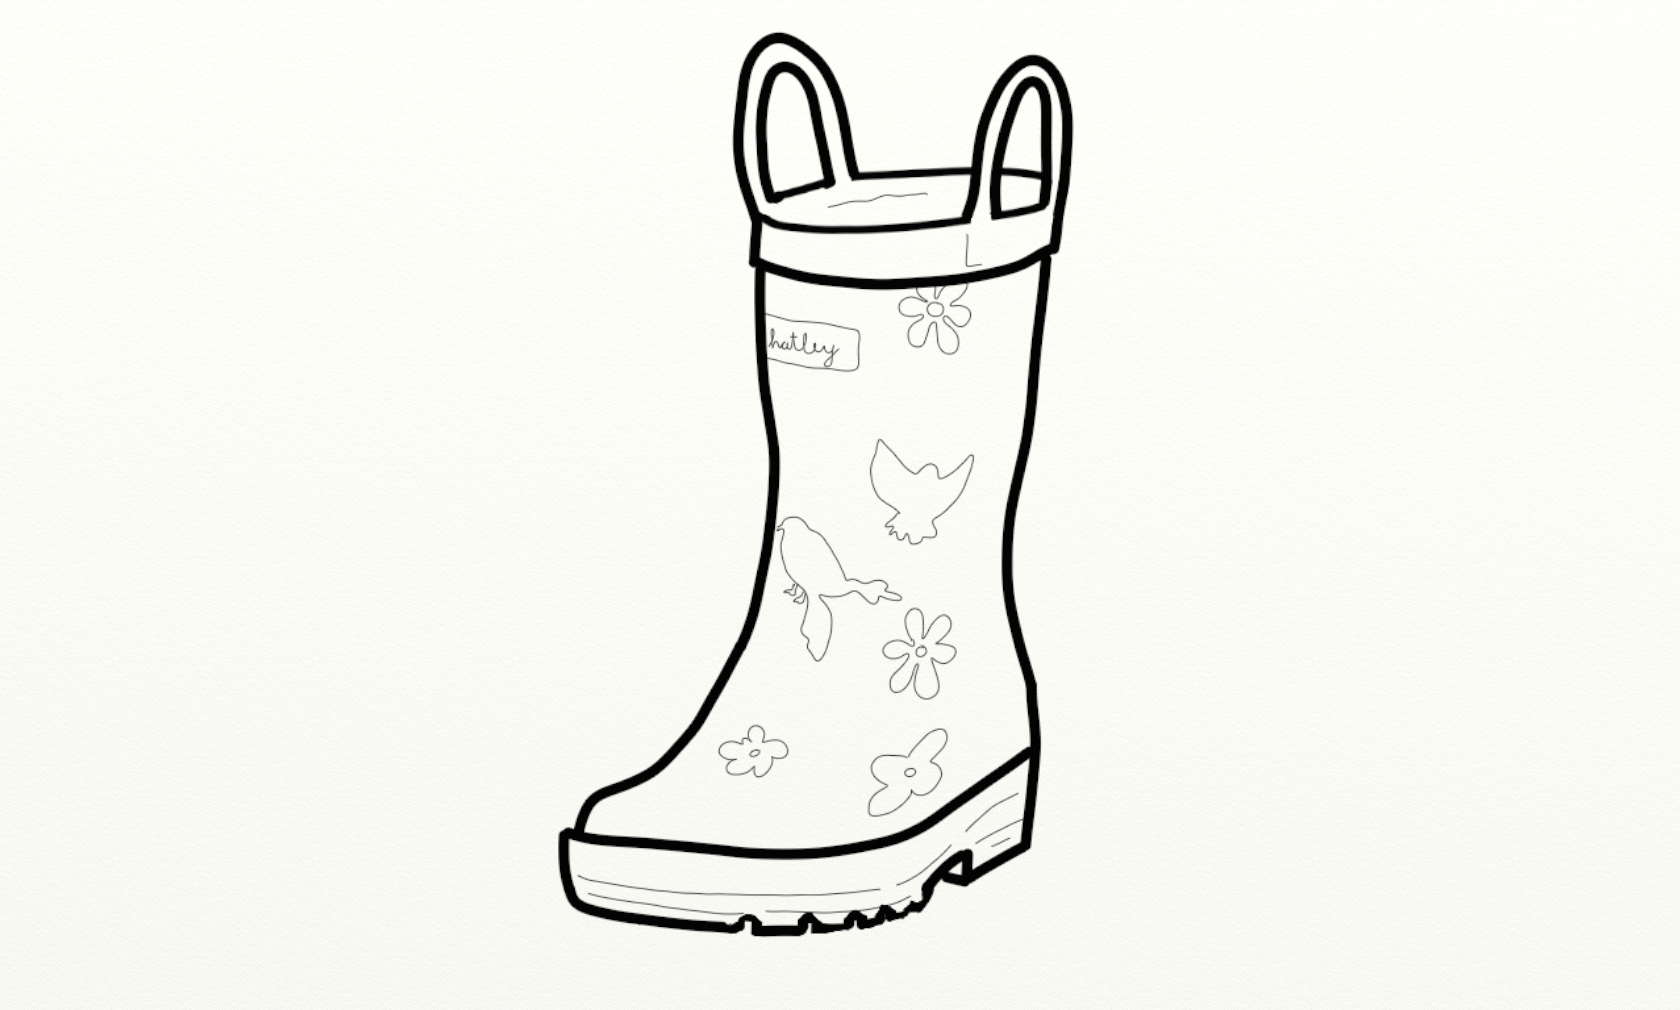 Rain boots the boot kidz girl'wellington boots girl'wellies clip art